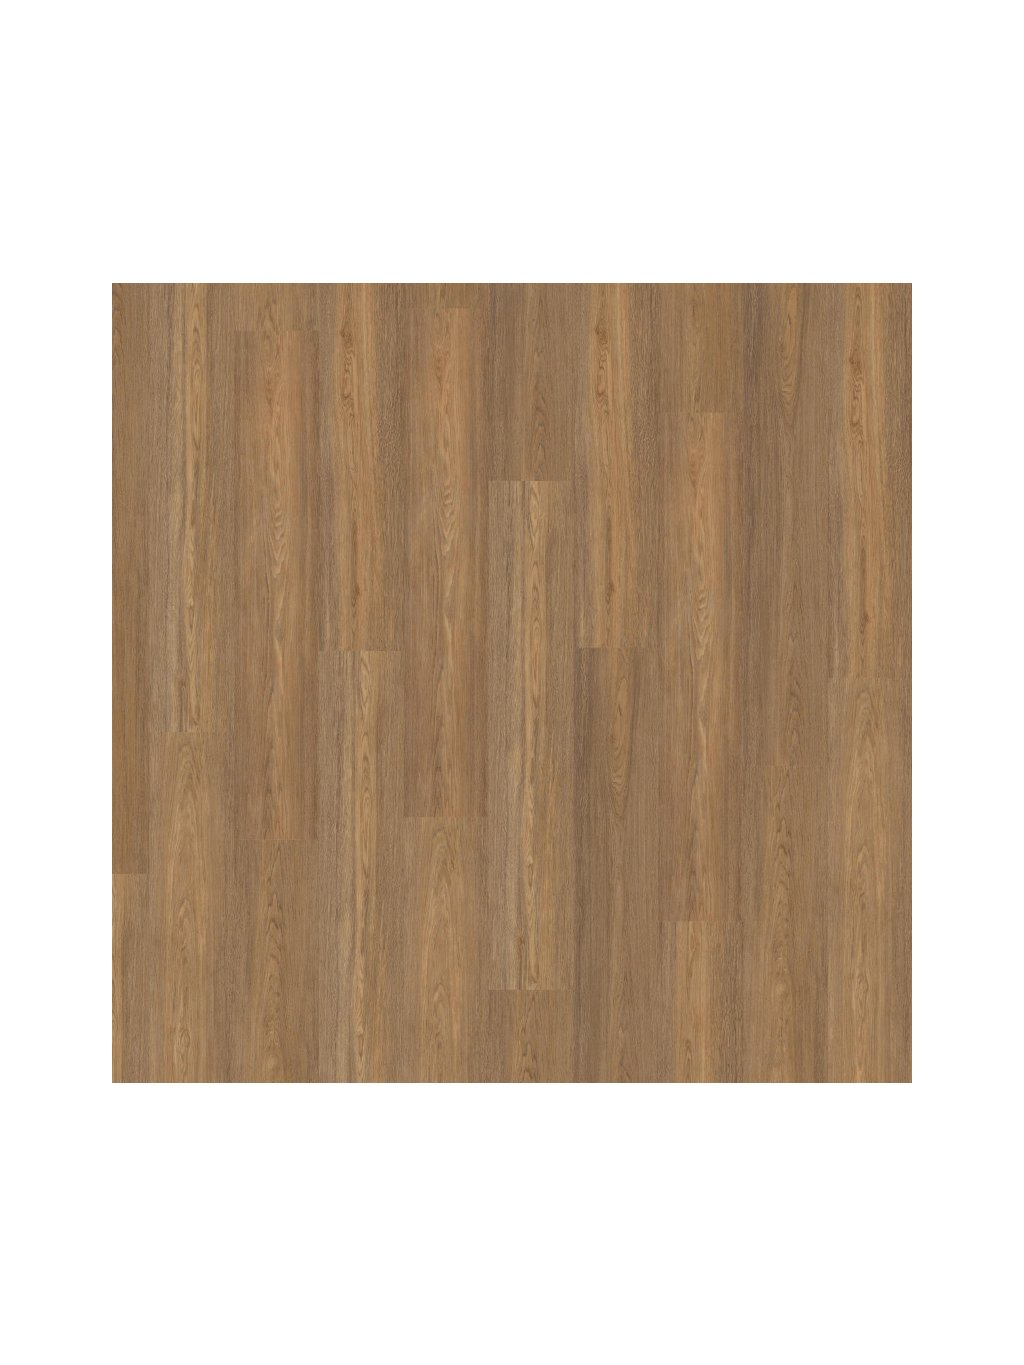 vinylova podlaha expona clic 9037 shingle oak